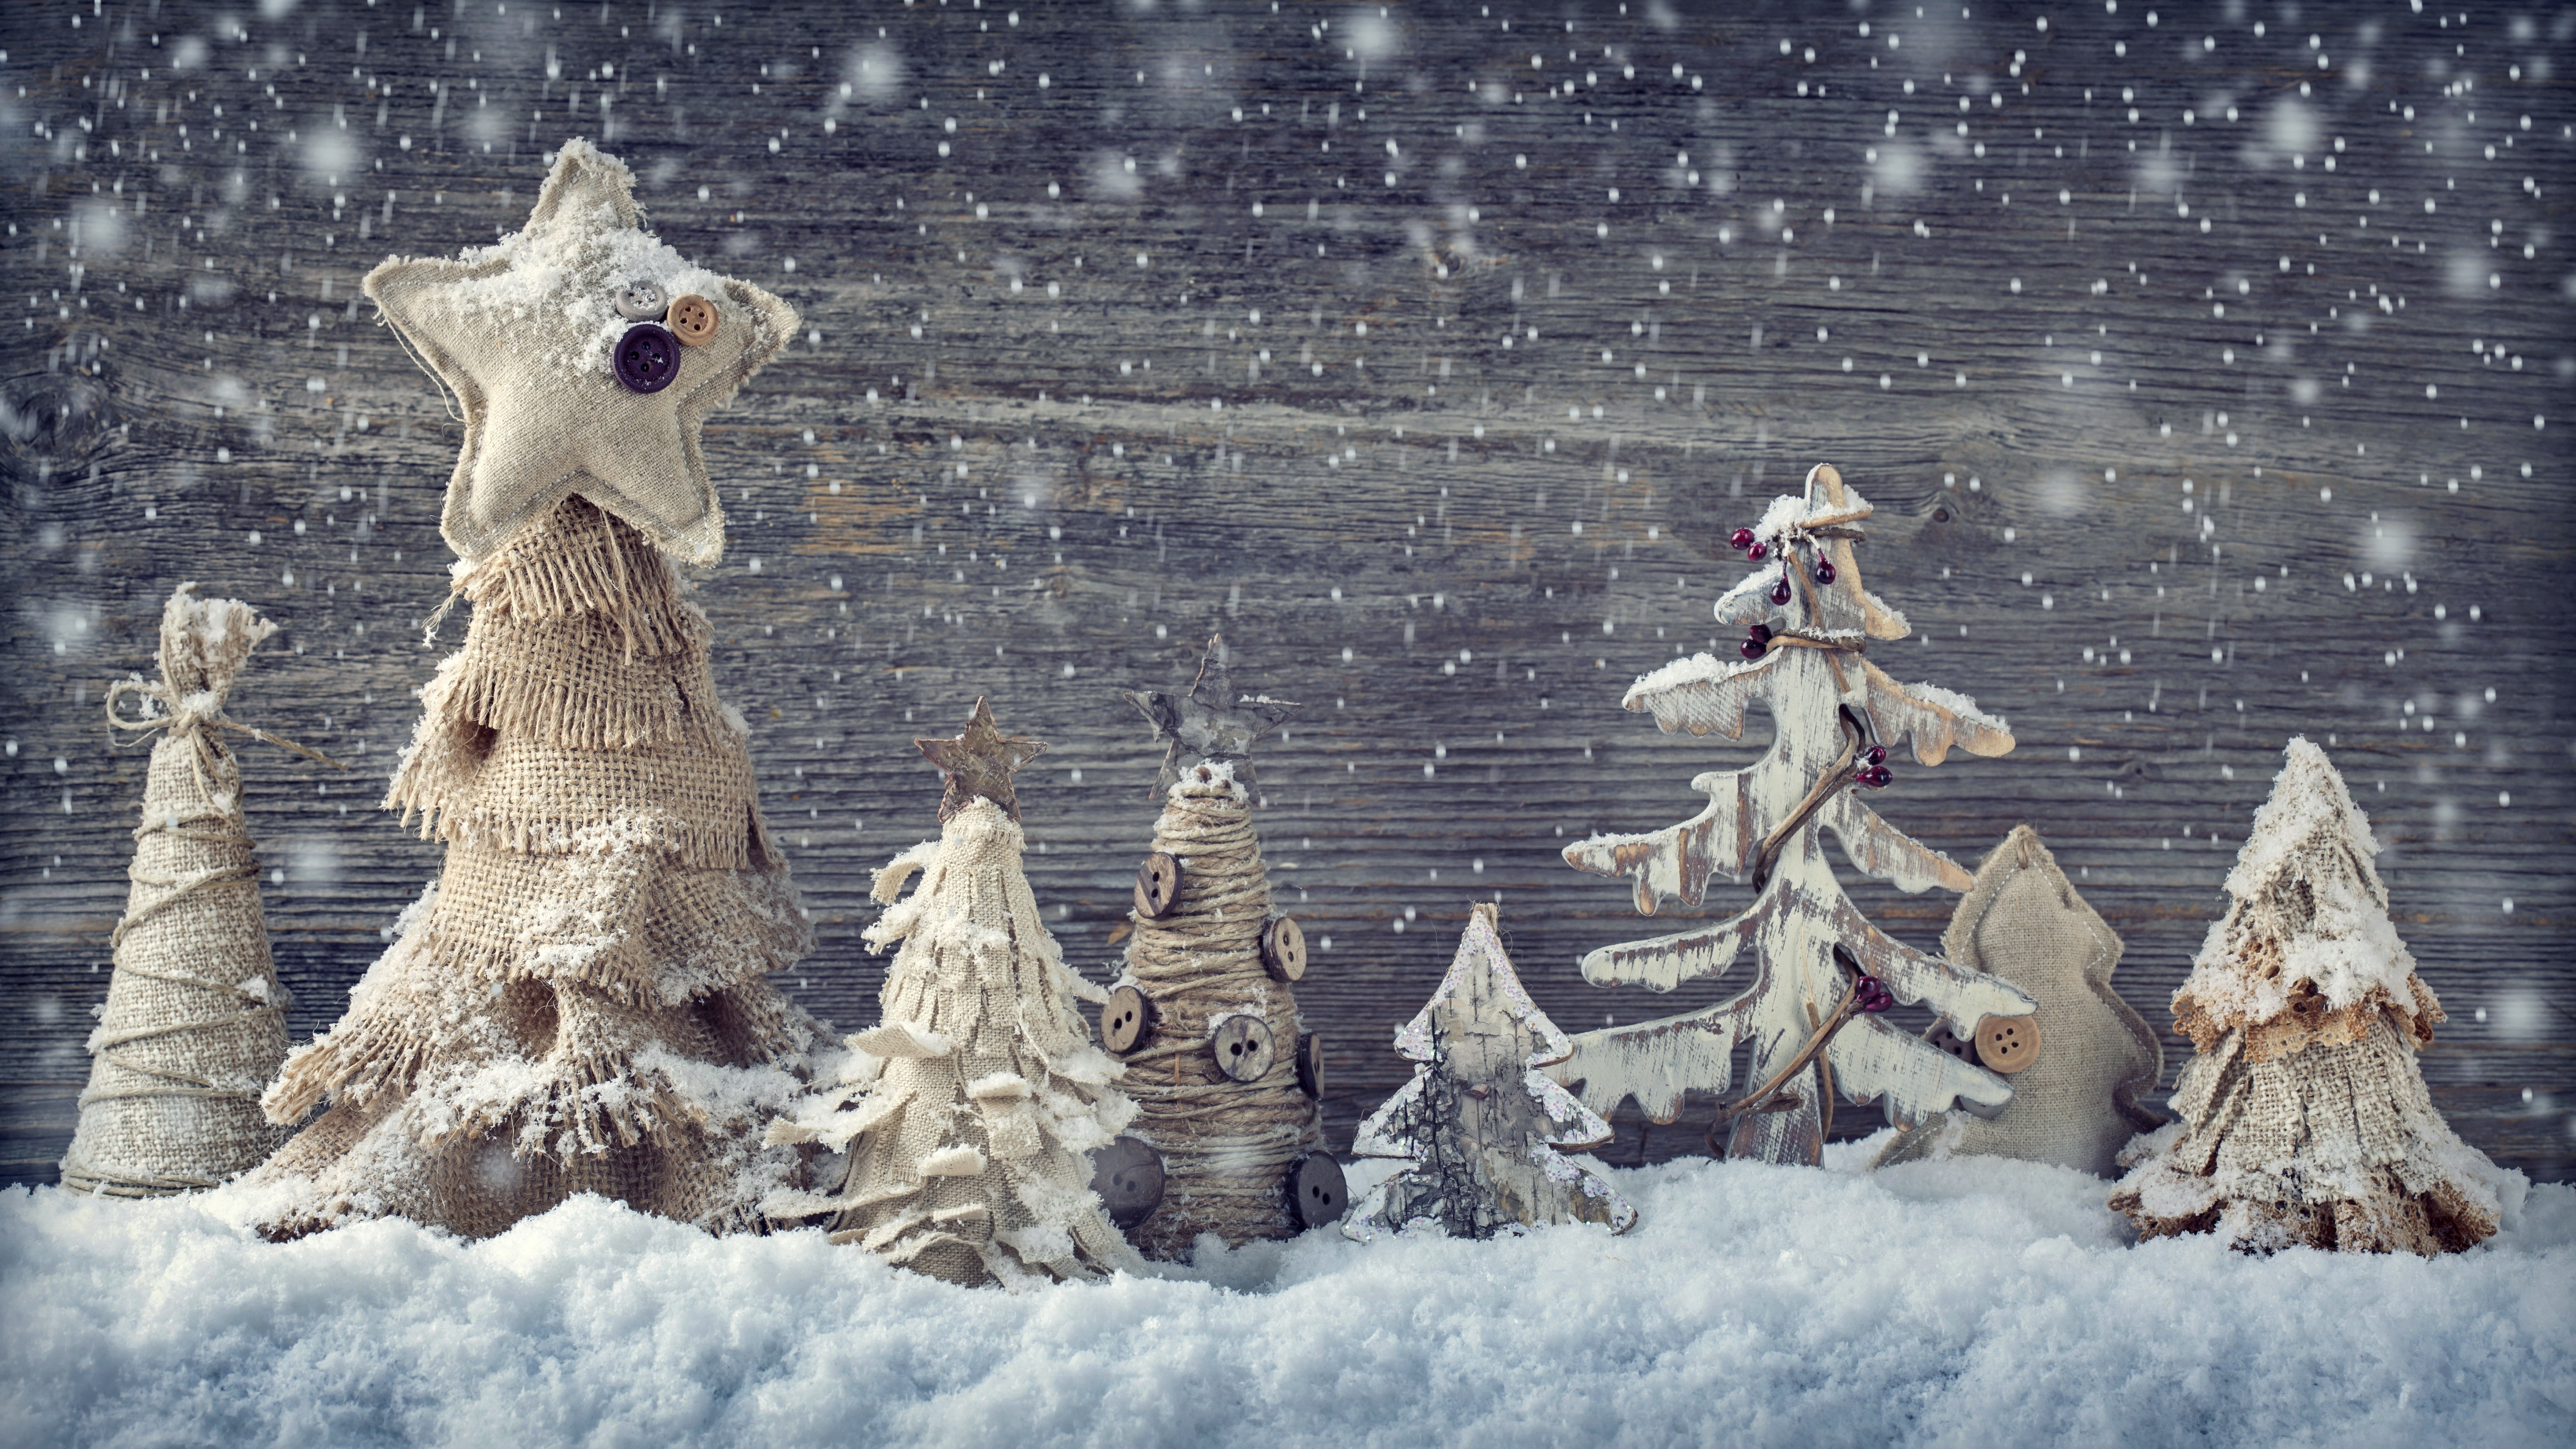 Wallpaper Christmas New Year Decorations Snow Holidays